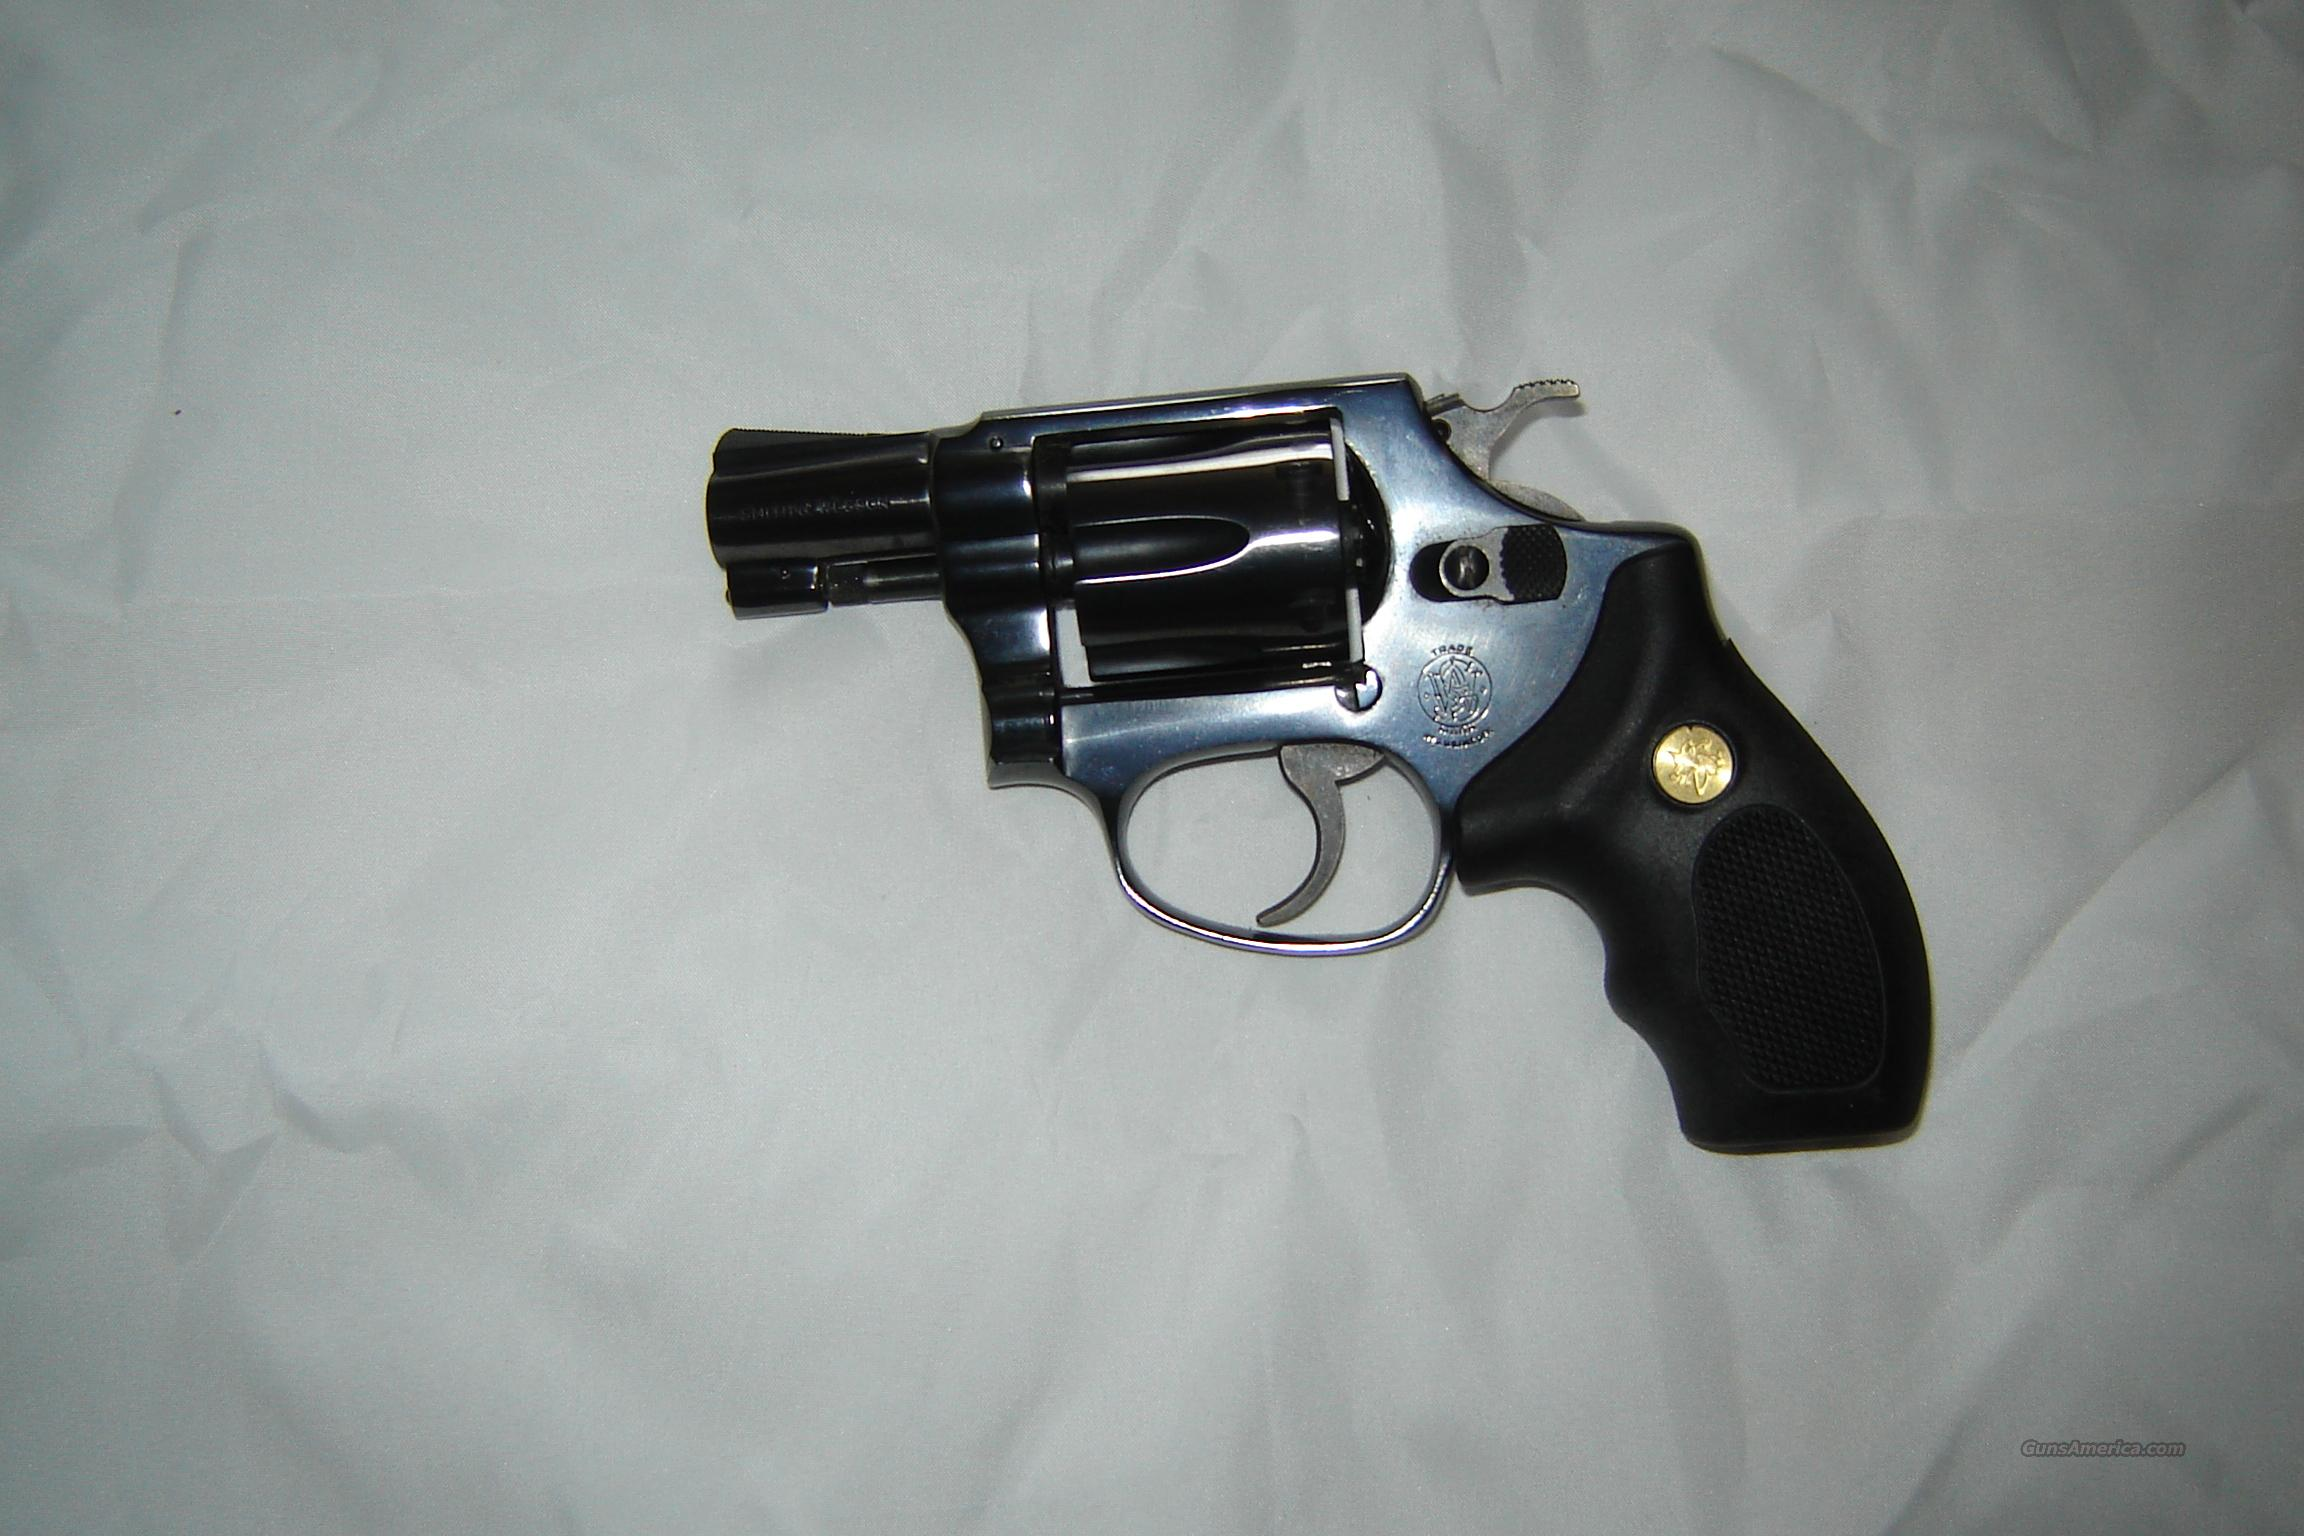 Smith & Wessom Mod 30-1  Guns > Pistols > Smith & Wesson Revolvers > Pocket Pistols